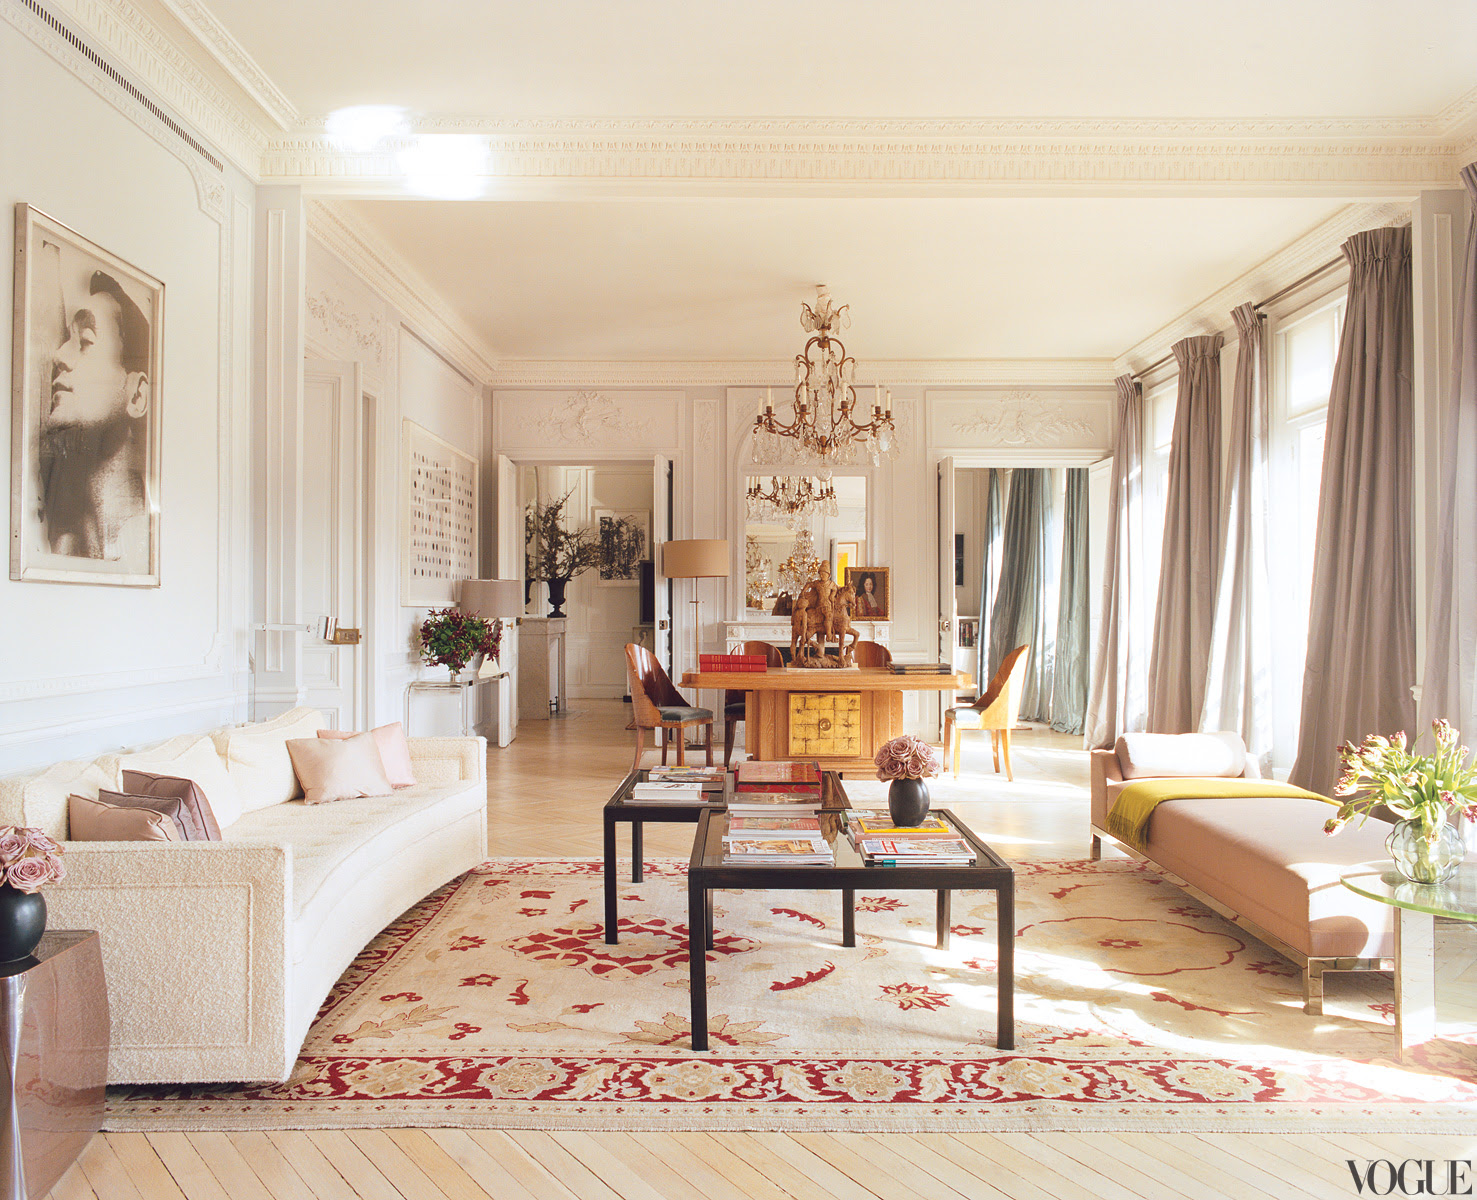 Famous folk at home: L'Wren Scott and Mick Jagger in Paris